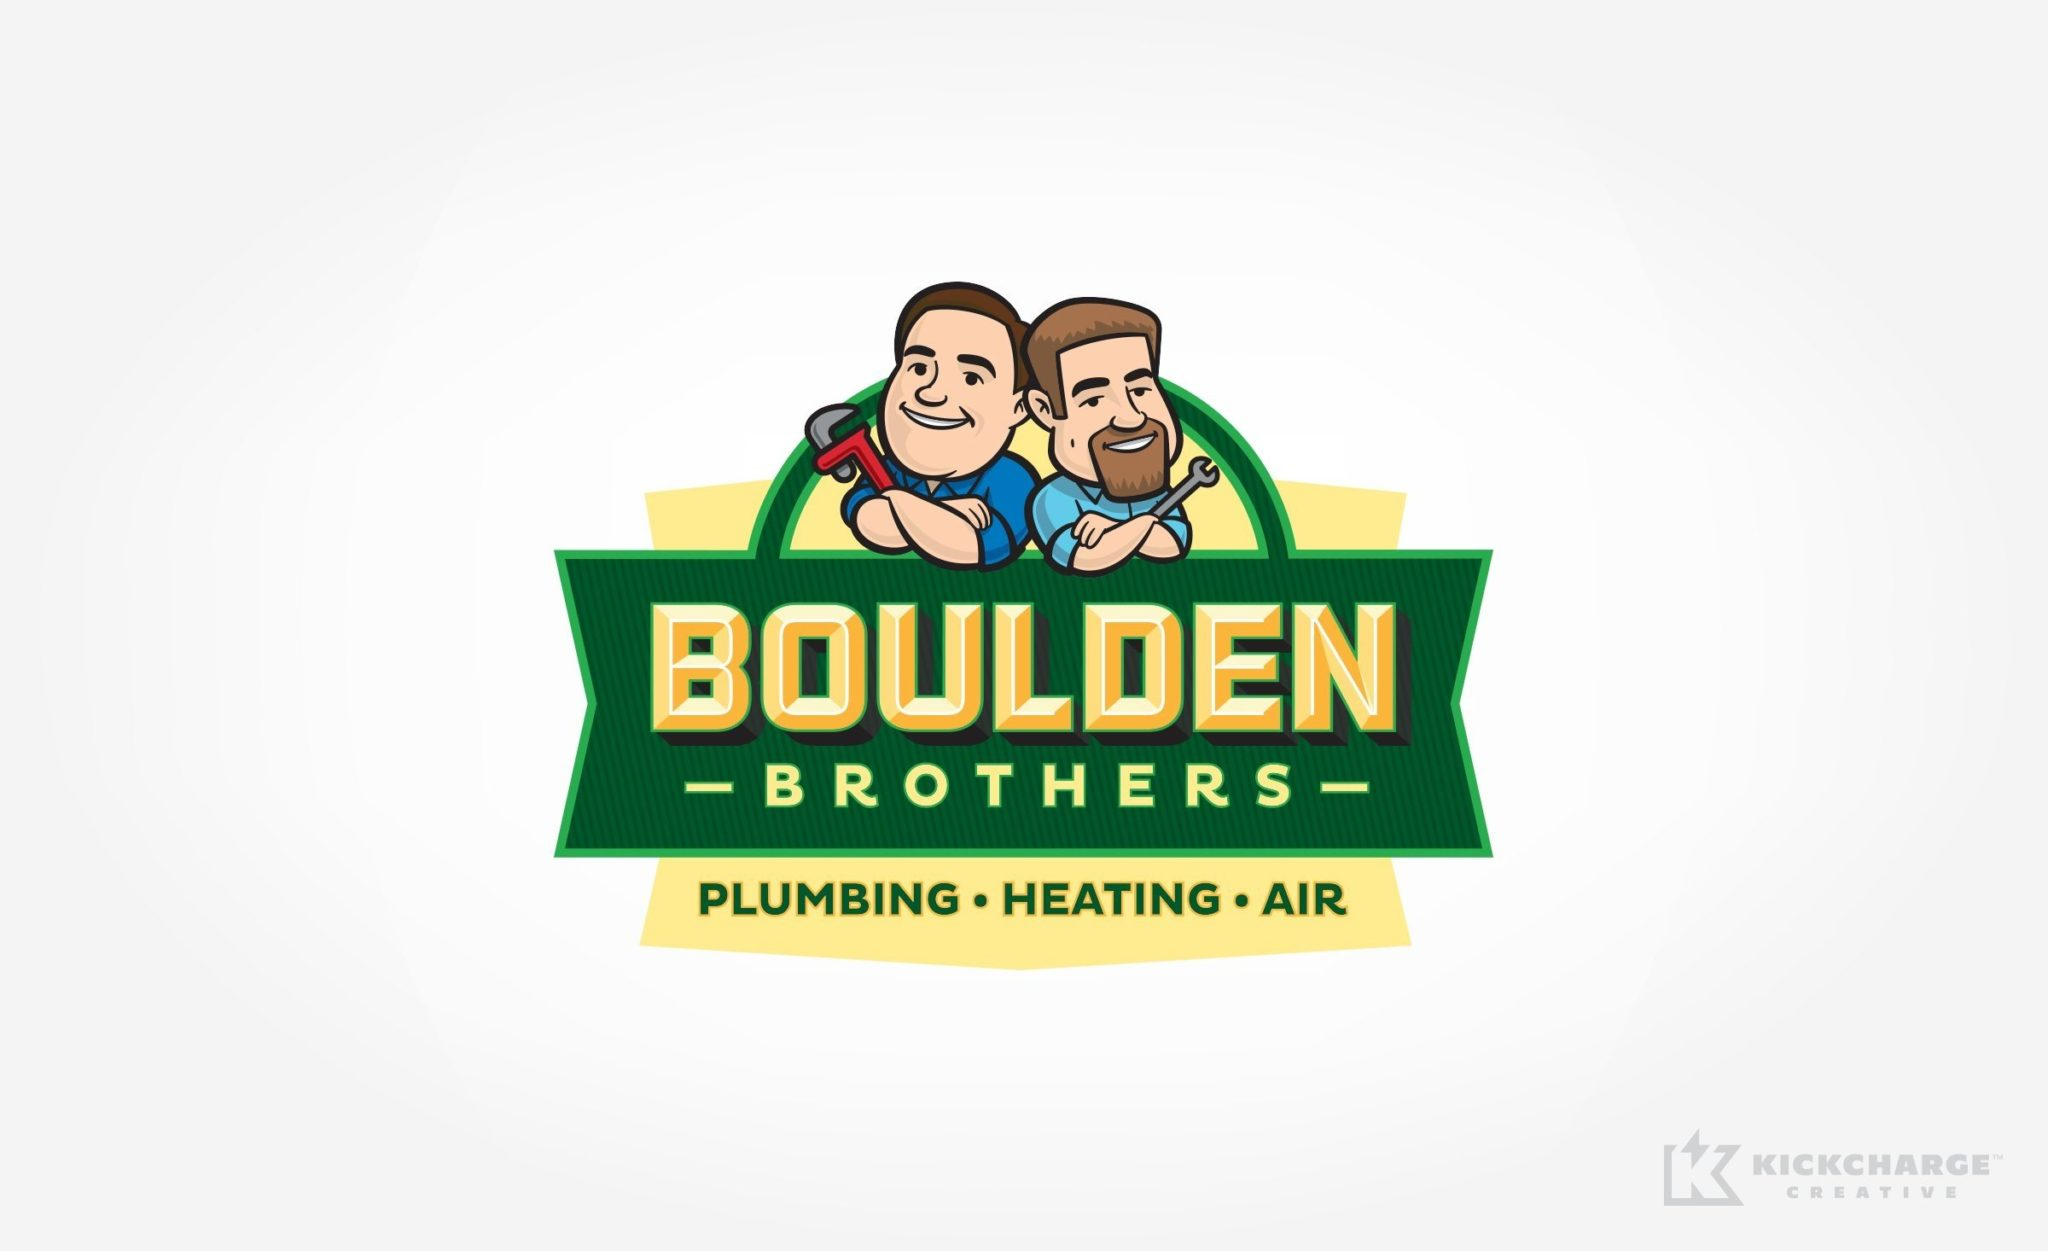 Logo design for Boulden Brothers Plumbing, Heating & Air.